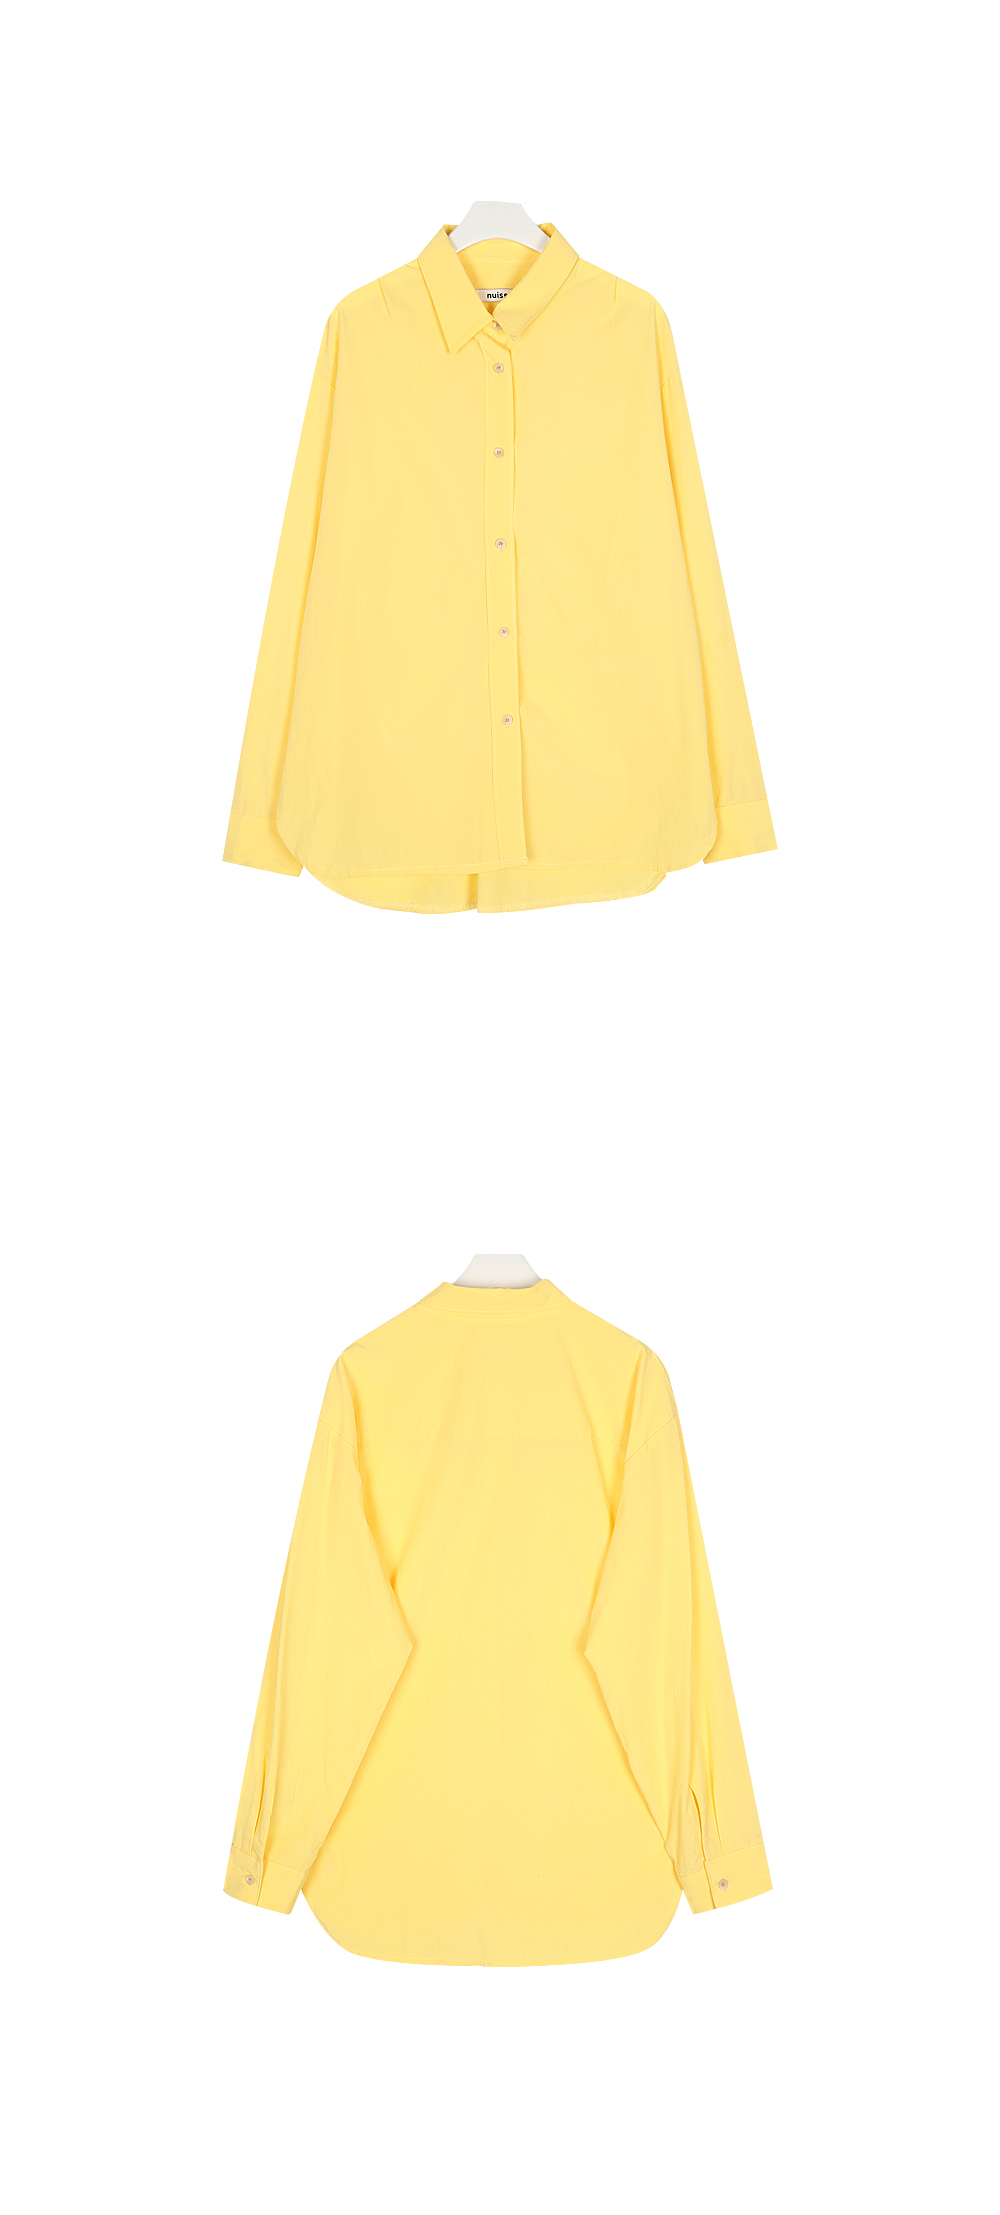 누이슈(NUISSUE) FRUITY COLOR BASIC SHIRTS LEMON